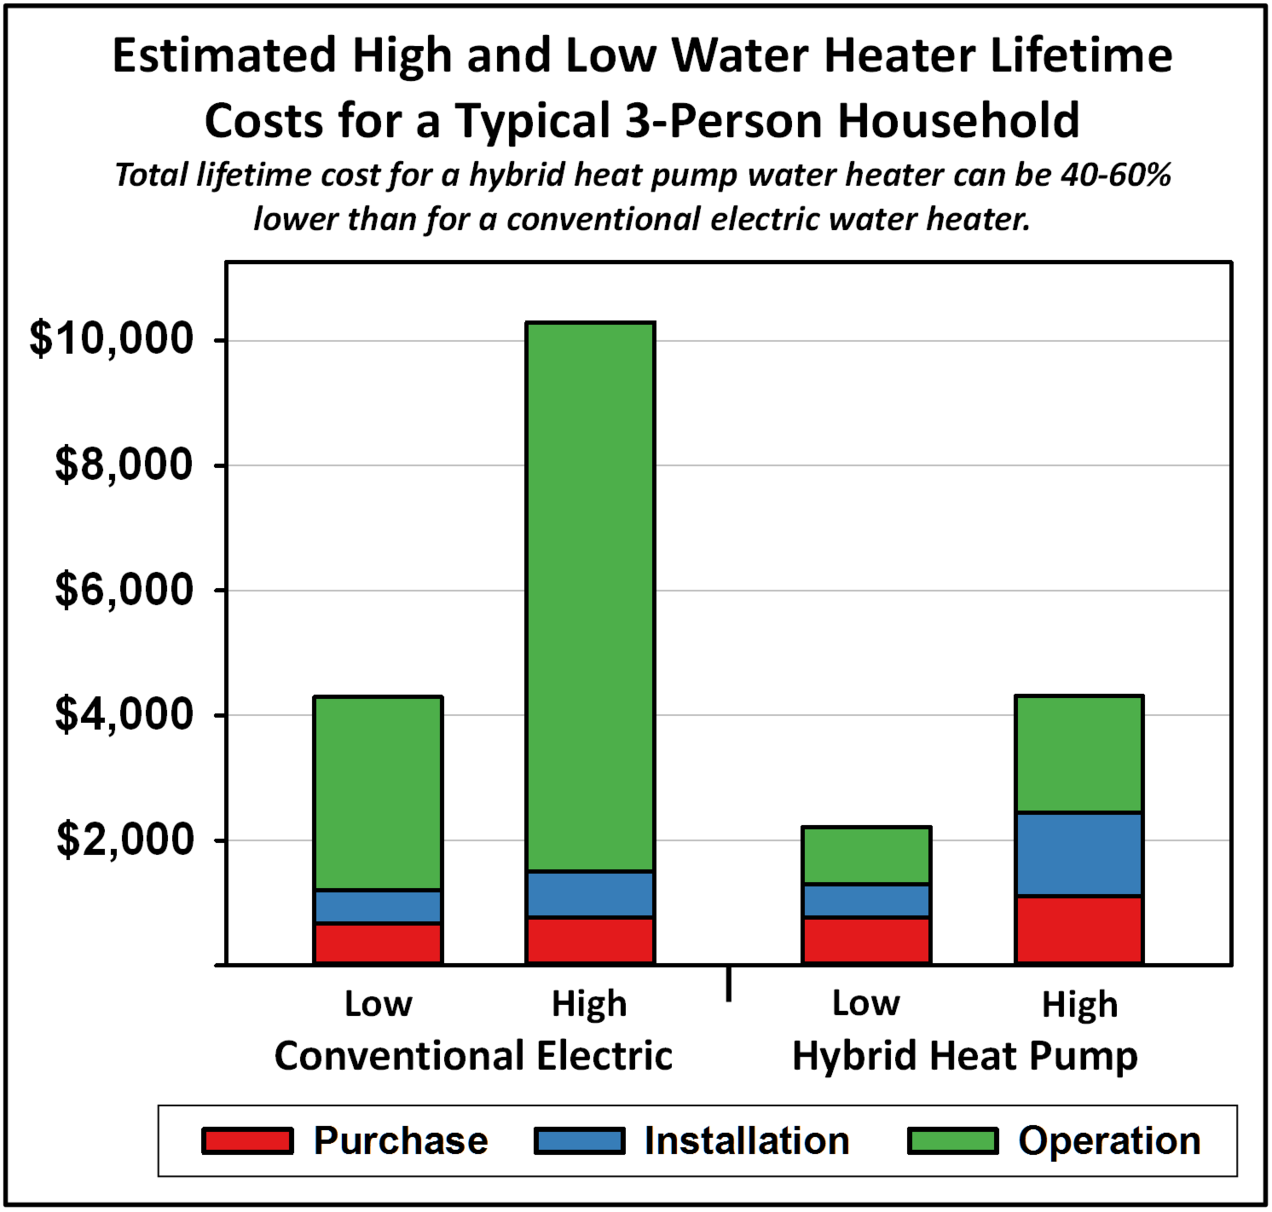 Very Cool Heat Pump Water Heaters Save Energy And Money Nrdc How To Change The Temperature On Your Electric Heater Bottom Linewith An Efficient You Can Take Same Number Of Hot Showers For Less While Helping Planet